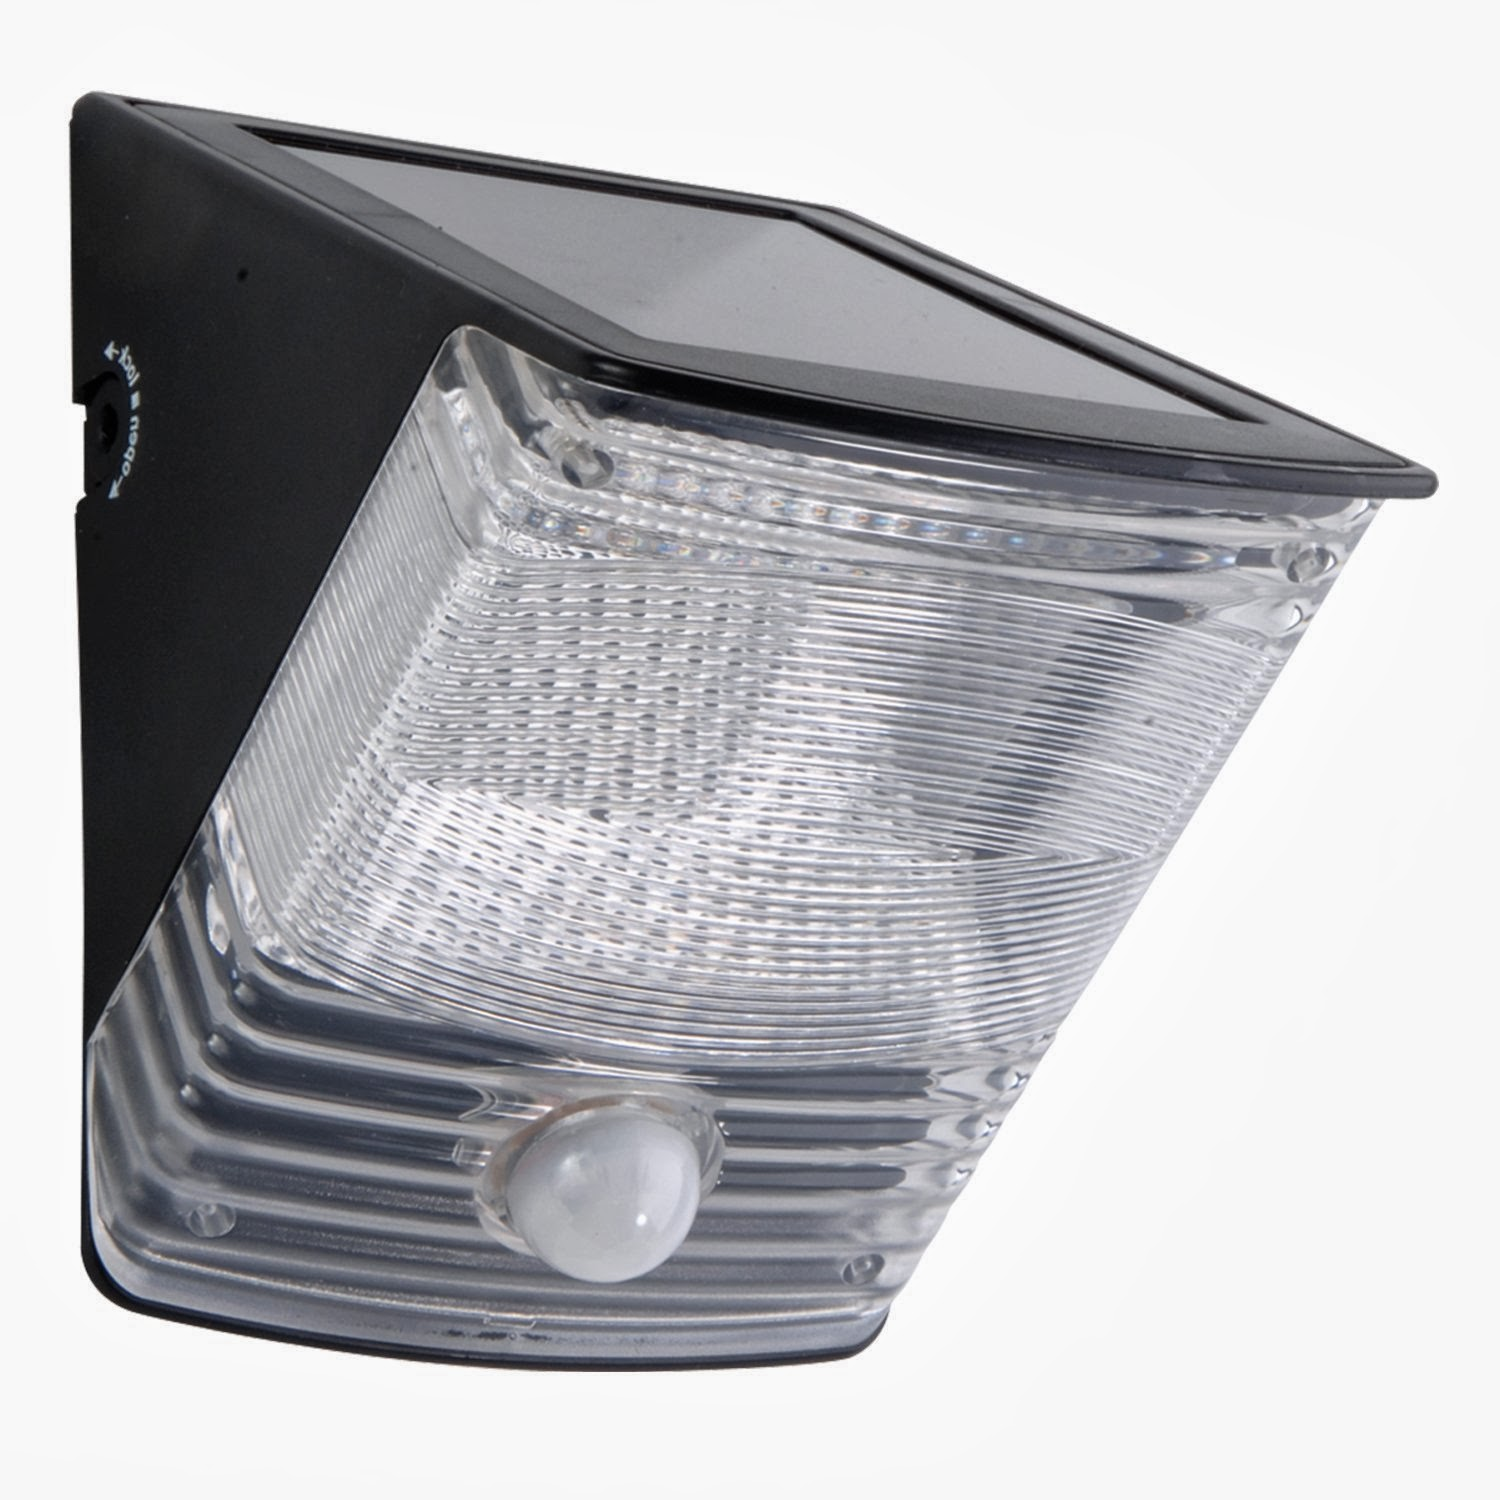 Led outdoor security lights For Your Premises Aesthetic